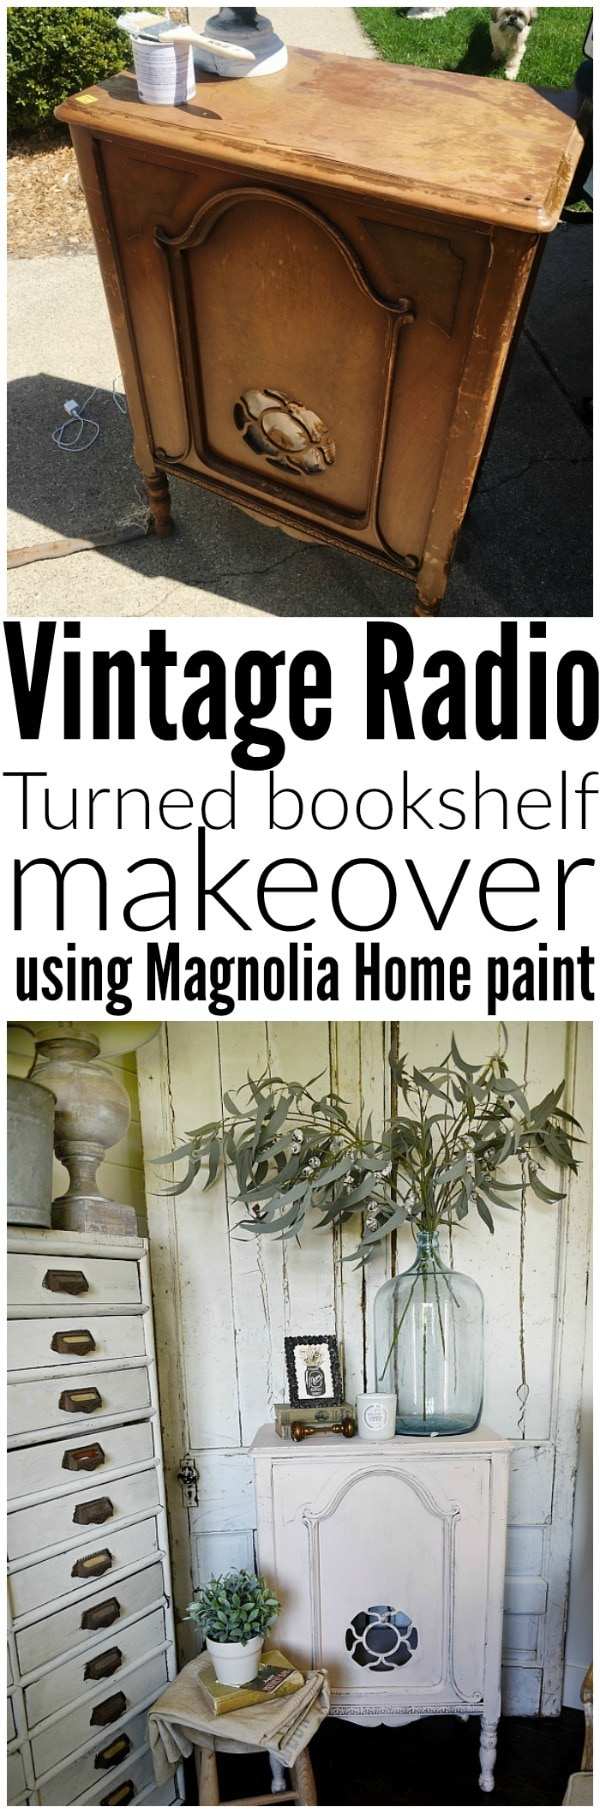 Vintage Radio turned bookshelf - A great piece for a nightstand, shelving, & so much more. Makeover done with the new Magnolia paint in Antique Rose the best blush pink paint color.